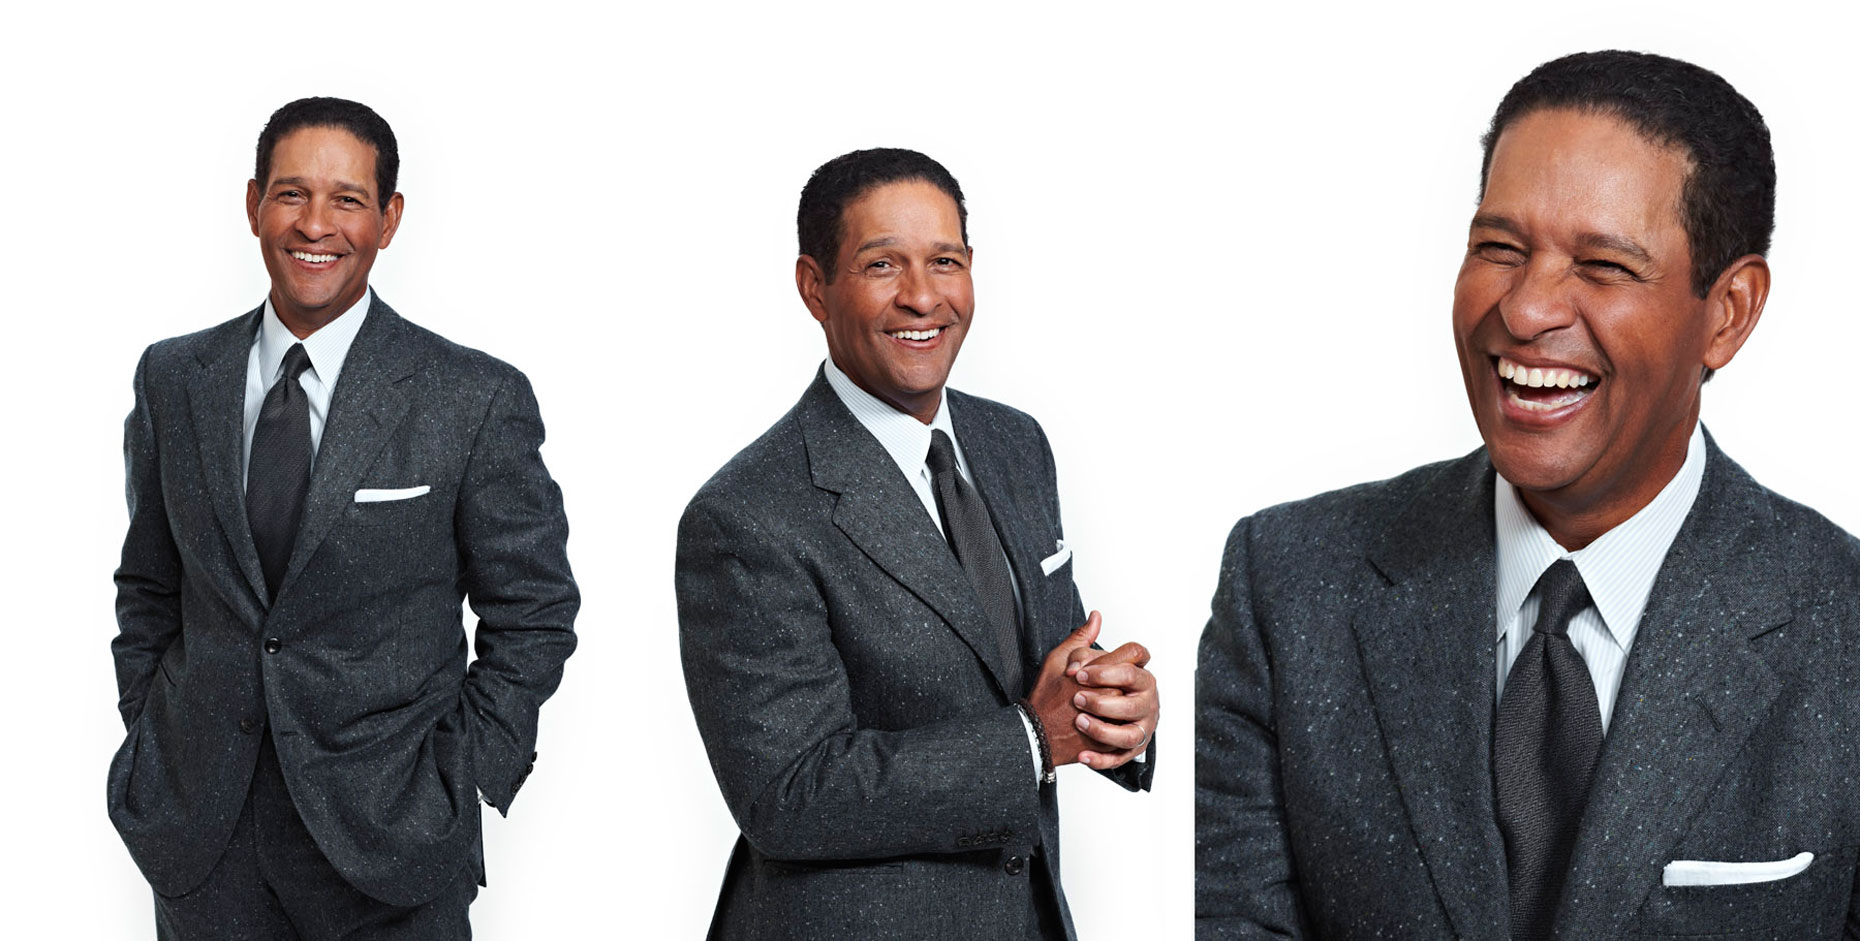 Bryant Gumbel of HBO Real Sports photo by Monte Isom